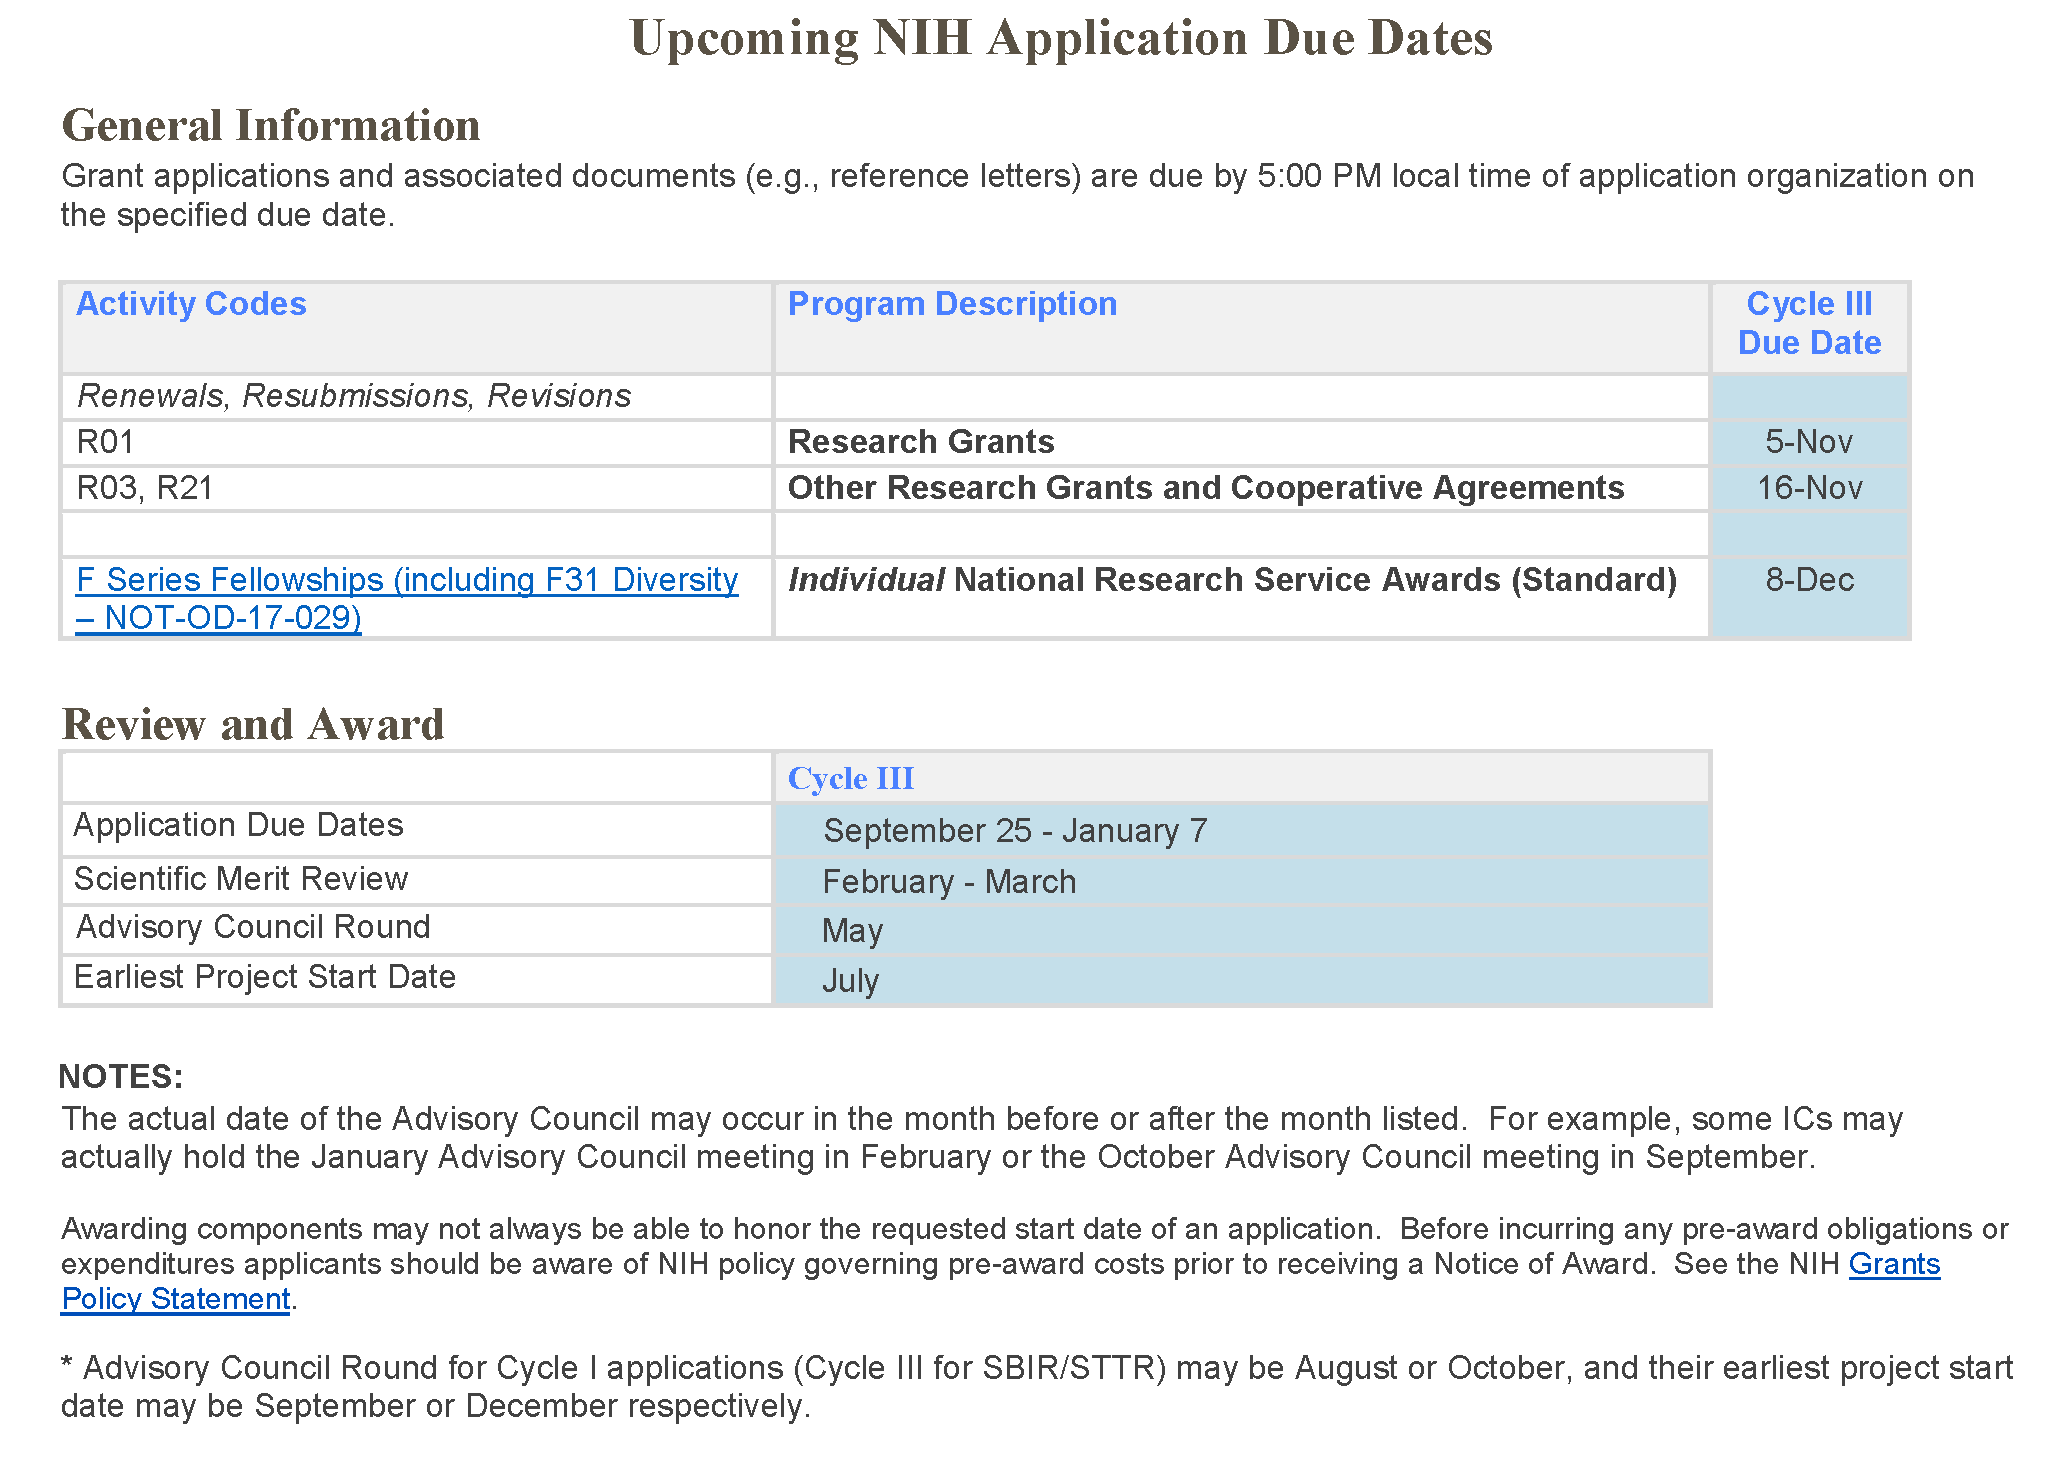 Nih due dates in Perth